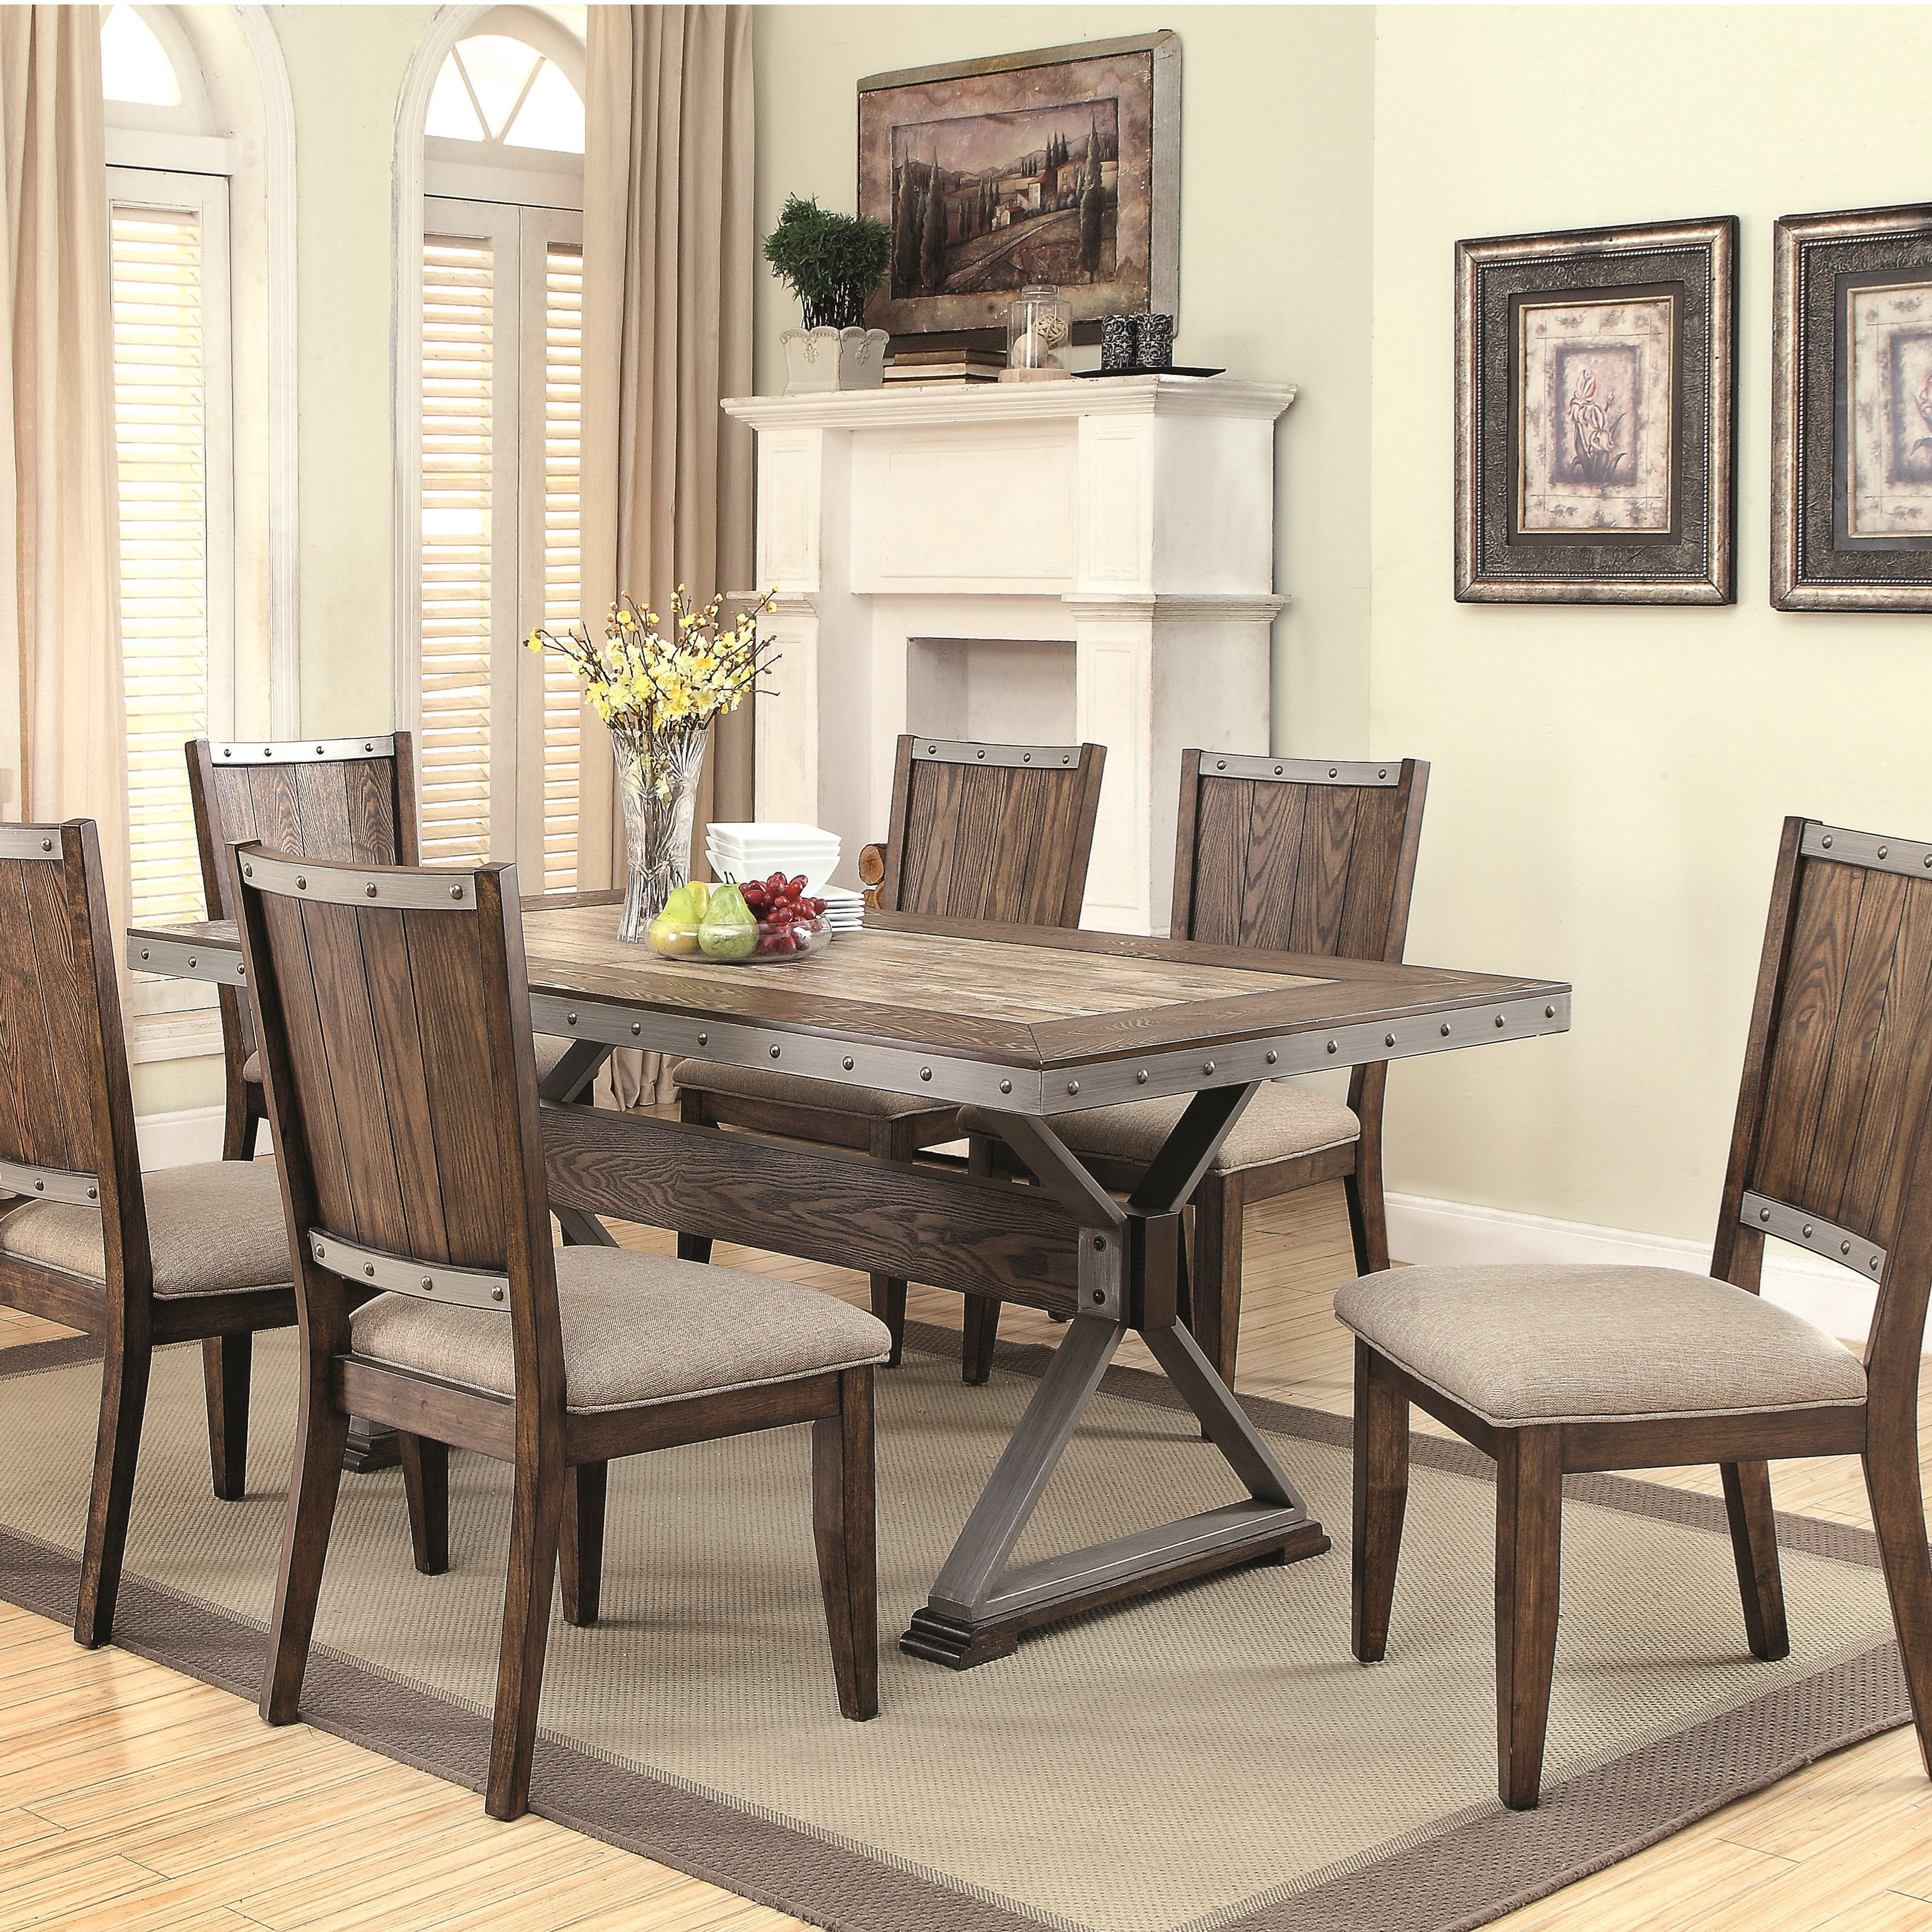 Coaster Beckett 7 Piece Table Set Northeast Factory Direct Dining 7 Or More Piece Sets